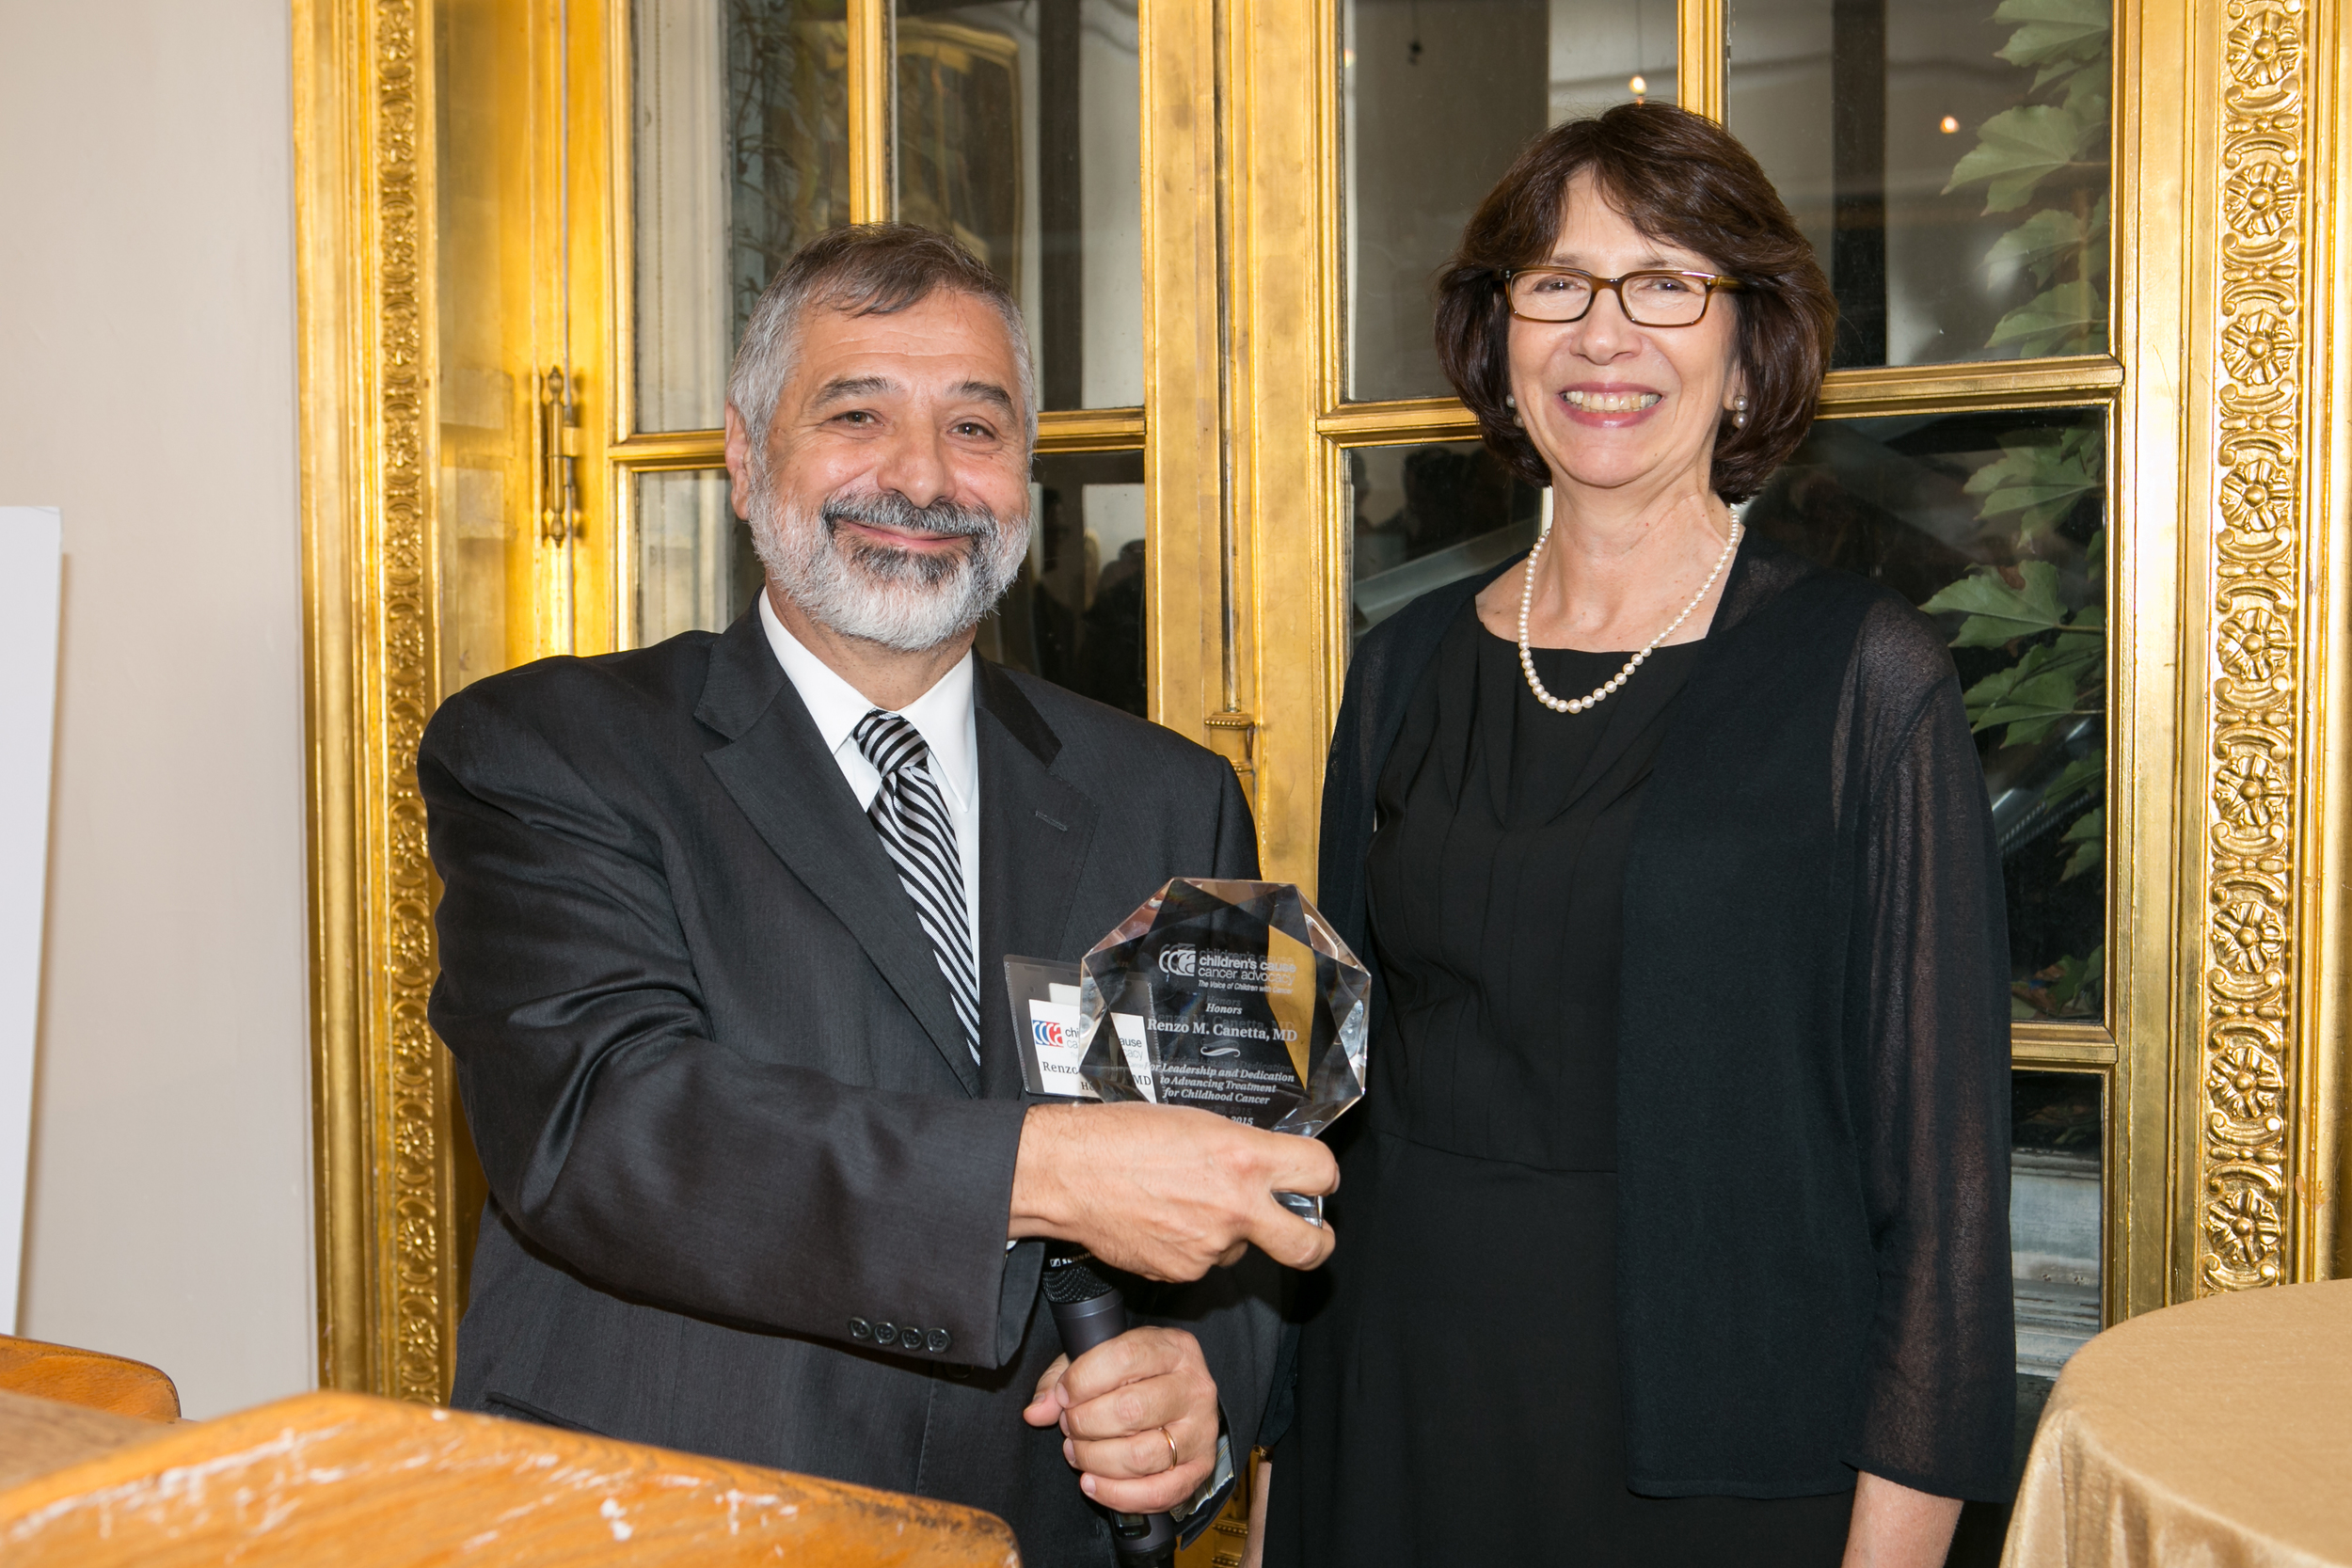 2015 Honoree Renzo Canetta, MD, with CCCA President Susan Weiner, PhD